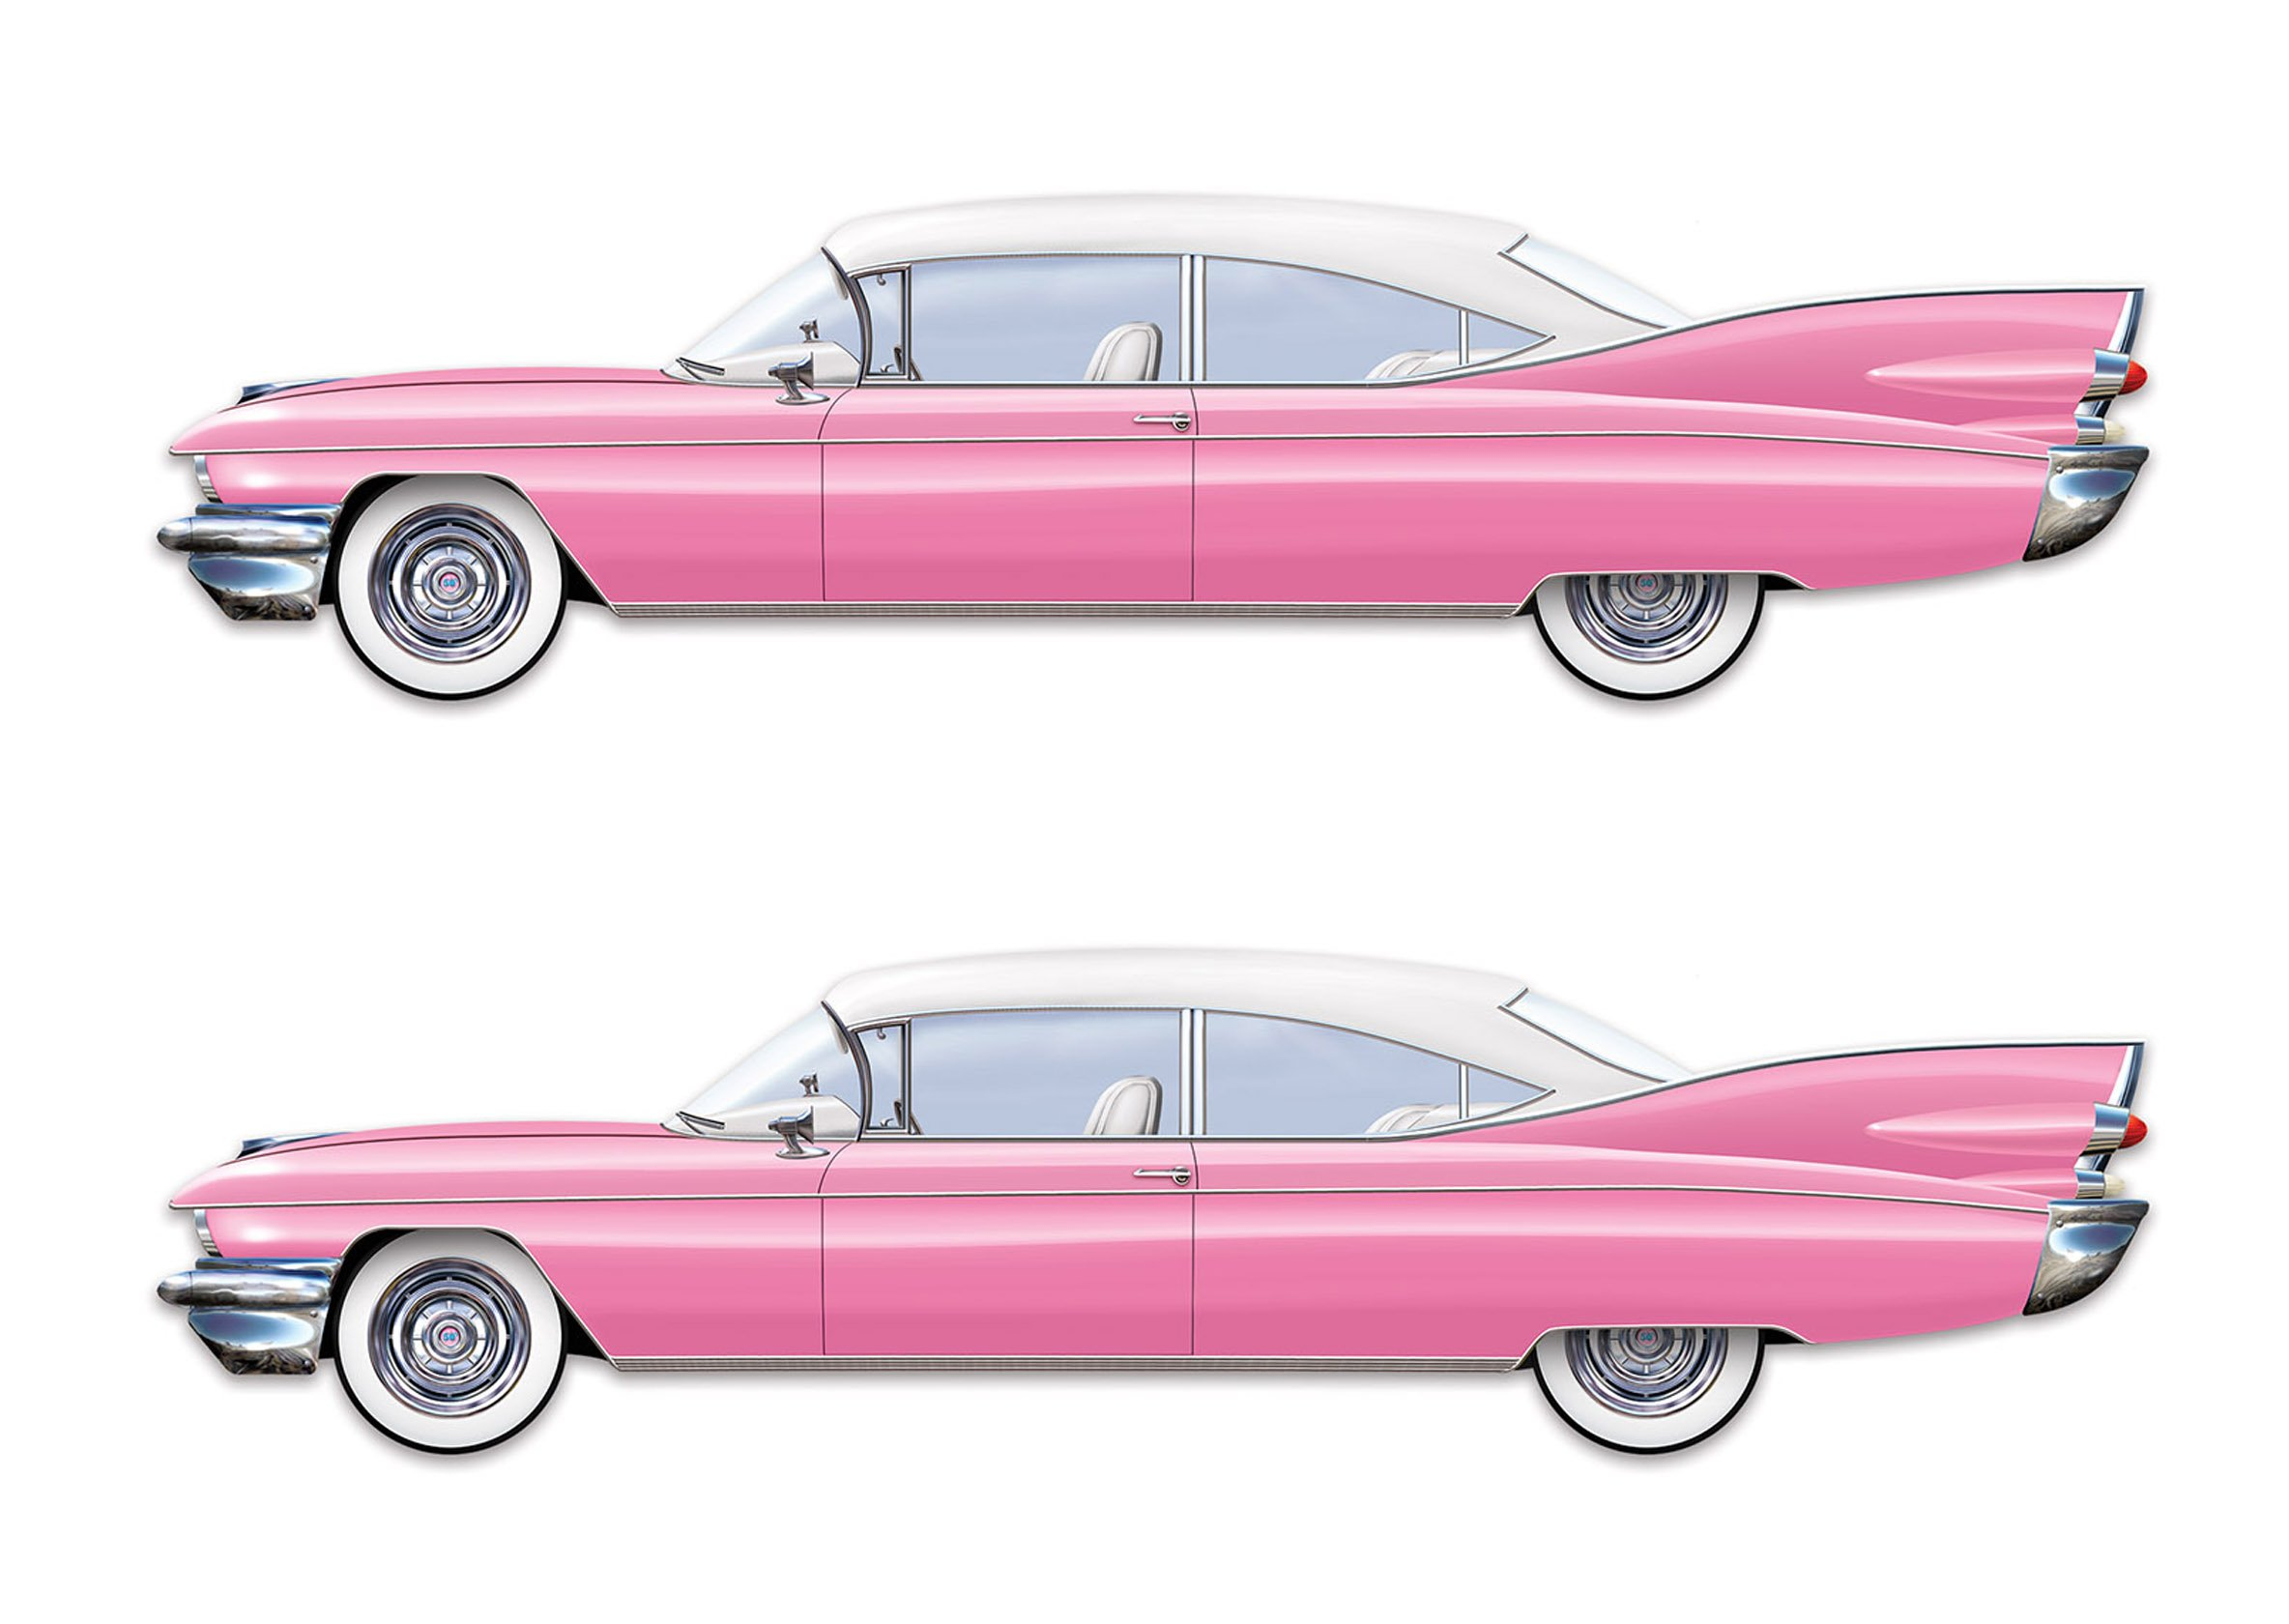 Beistle S54216AZ2, 2 Piece Jointed 50's Cruisin Cars, 6' by Beistle